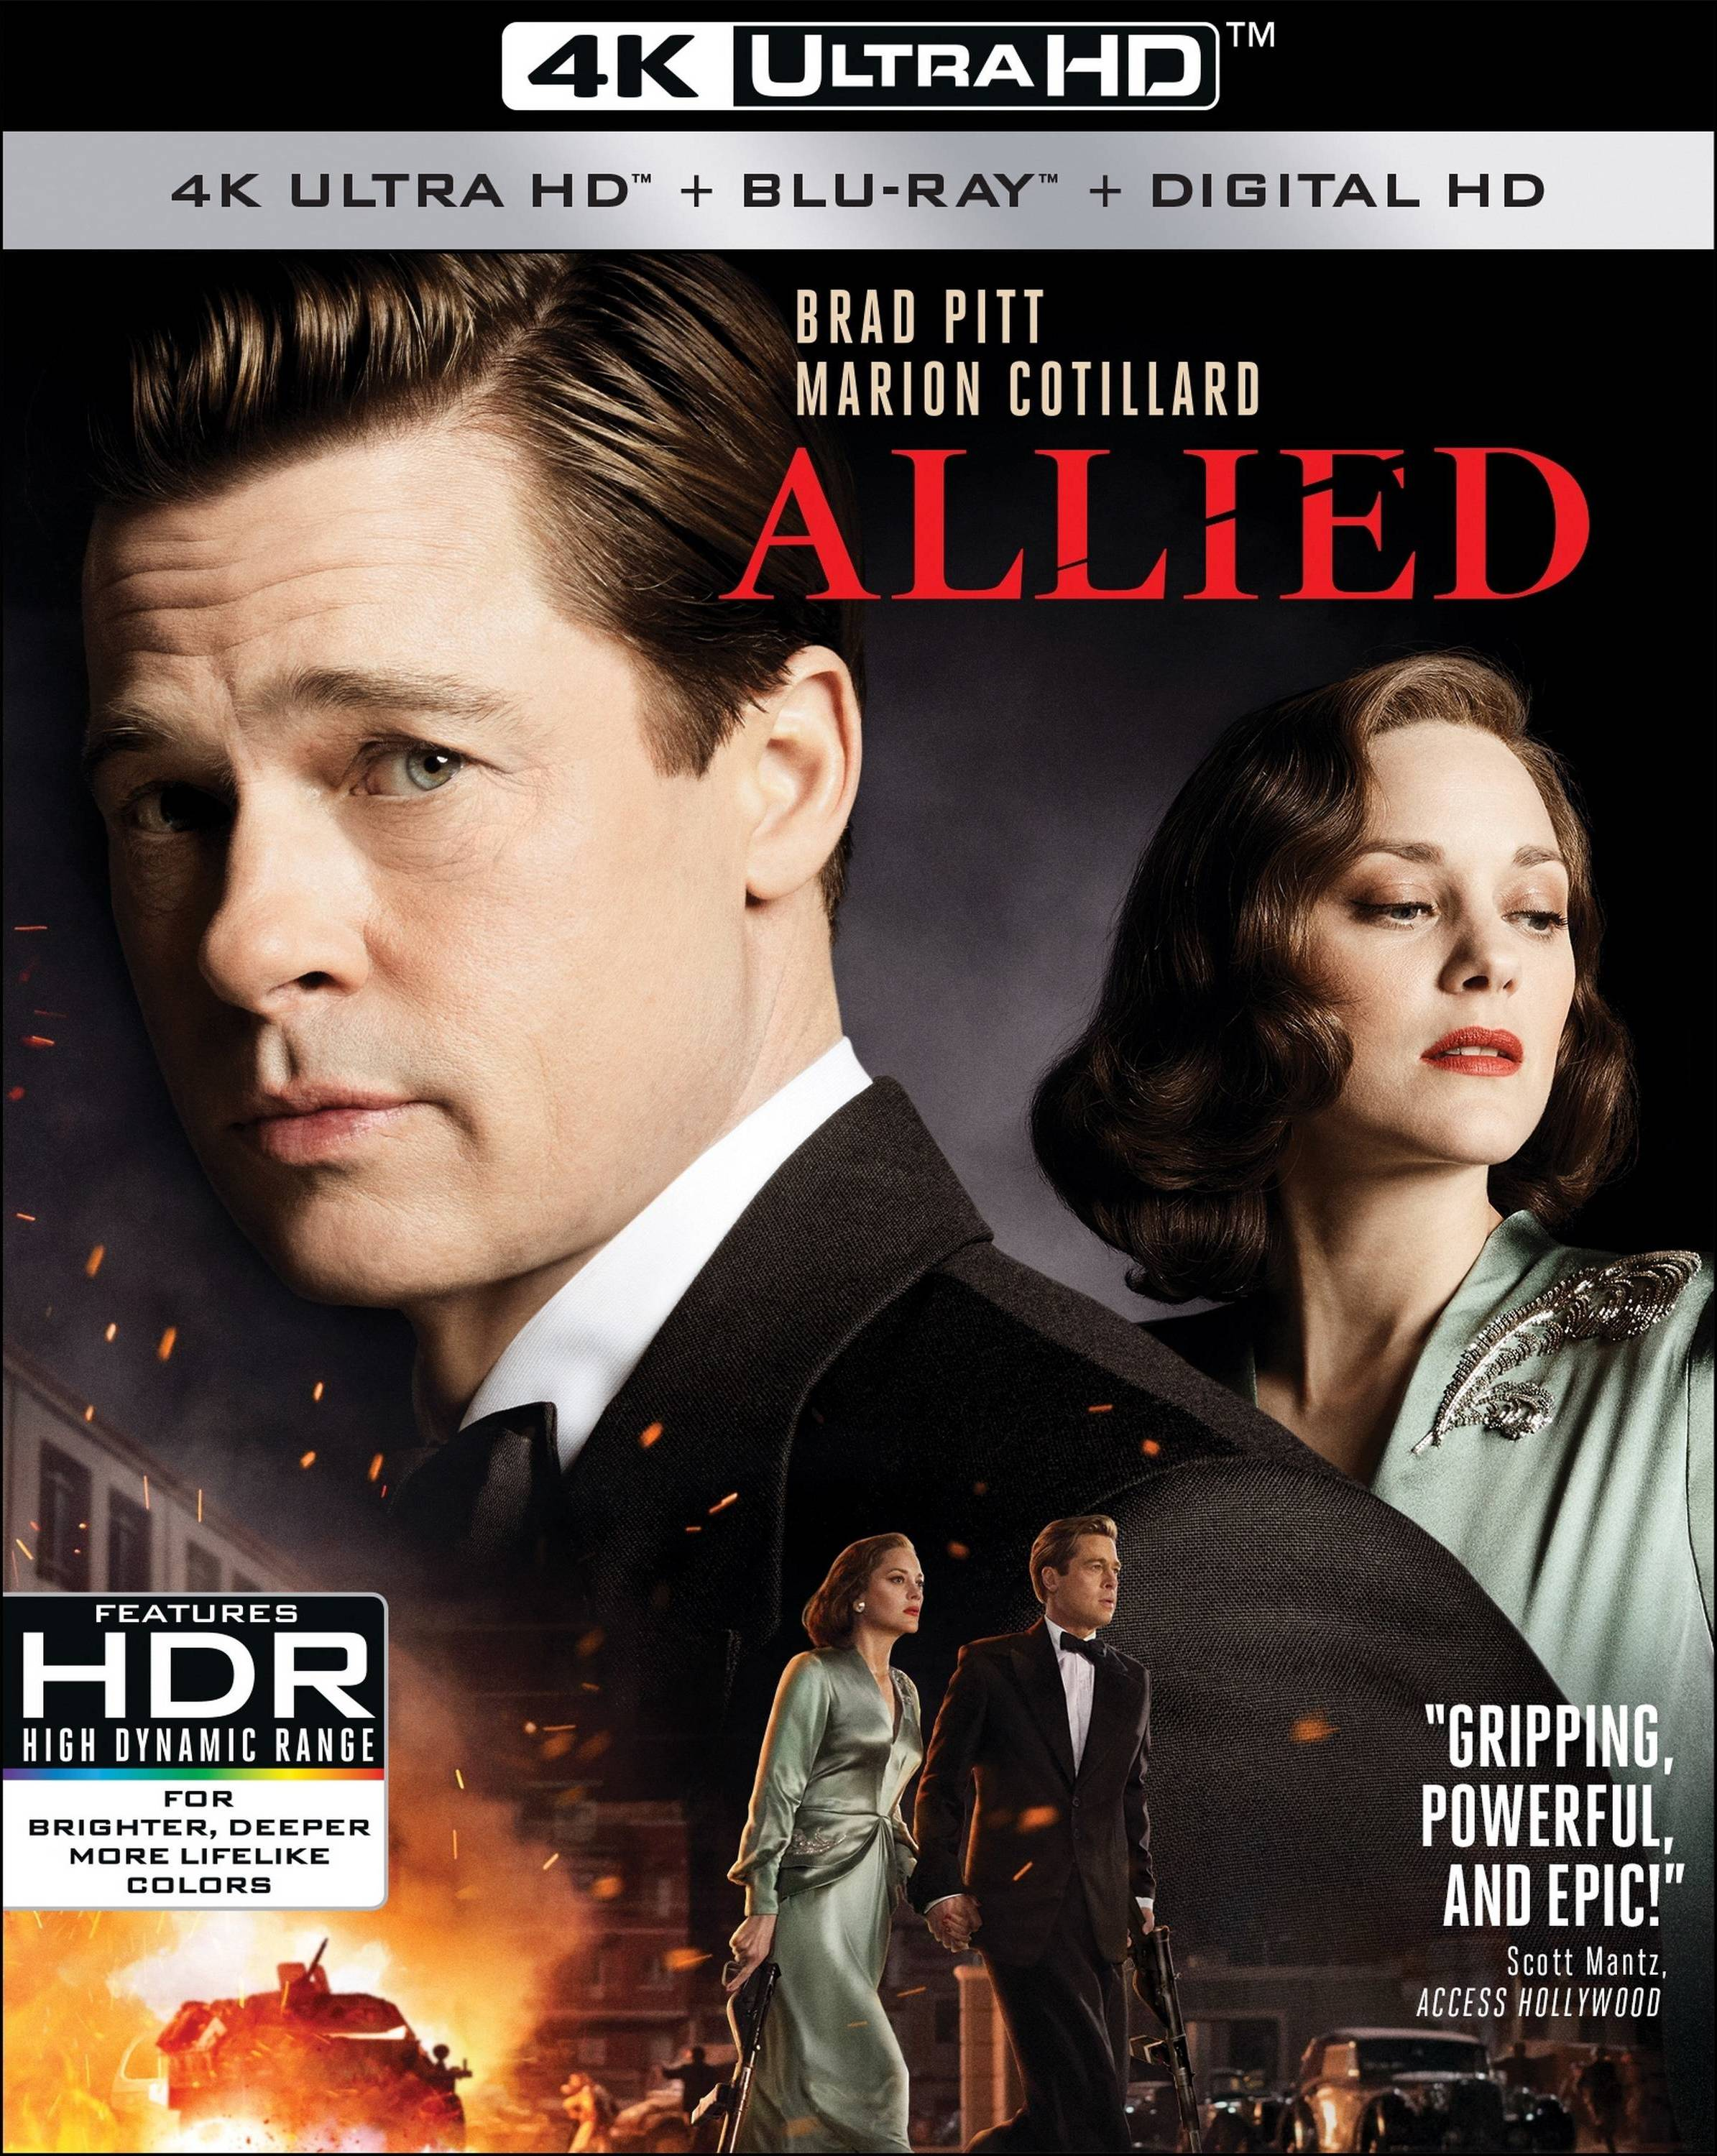 Allied 4K (2016) Ultra HD Blu-ray